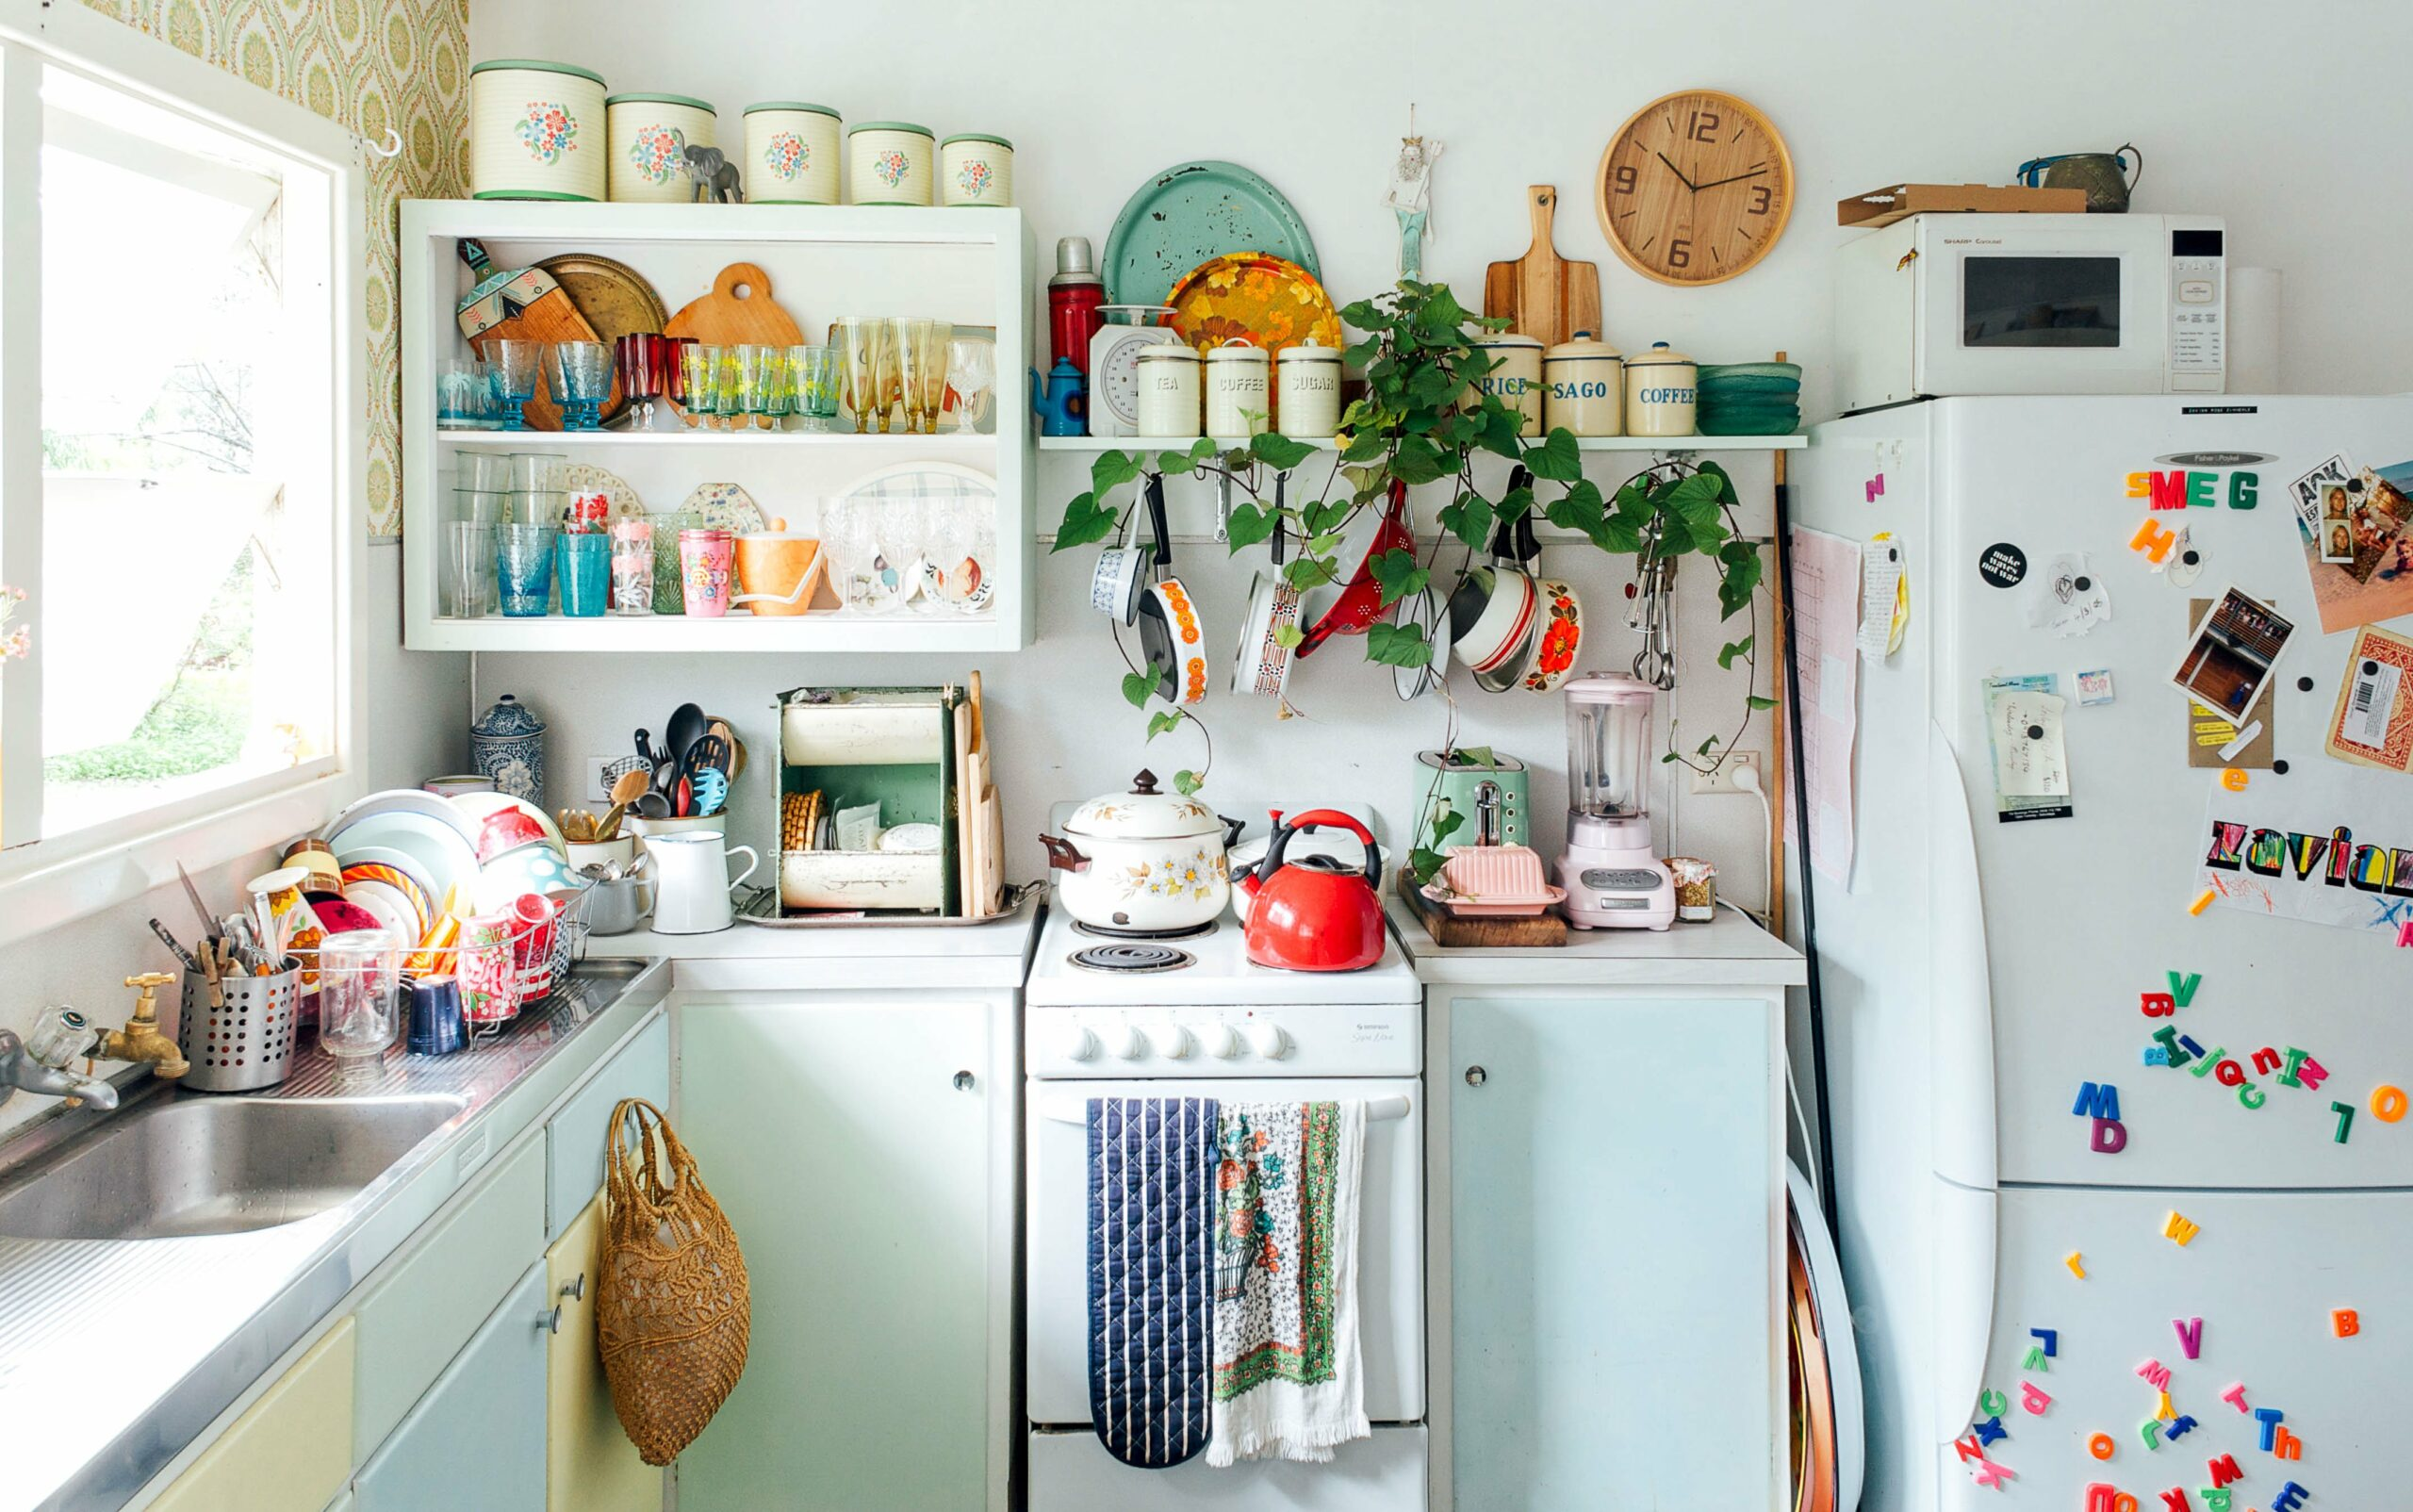 The complete guide to cleaning and organizing your kitchen